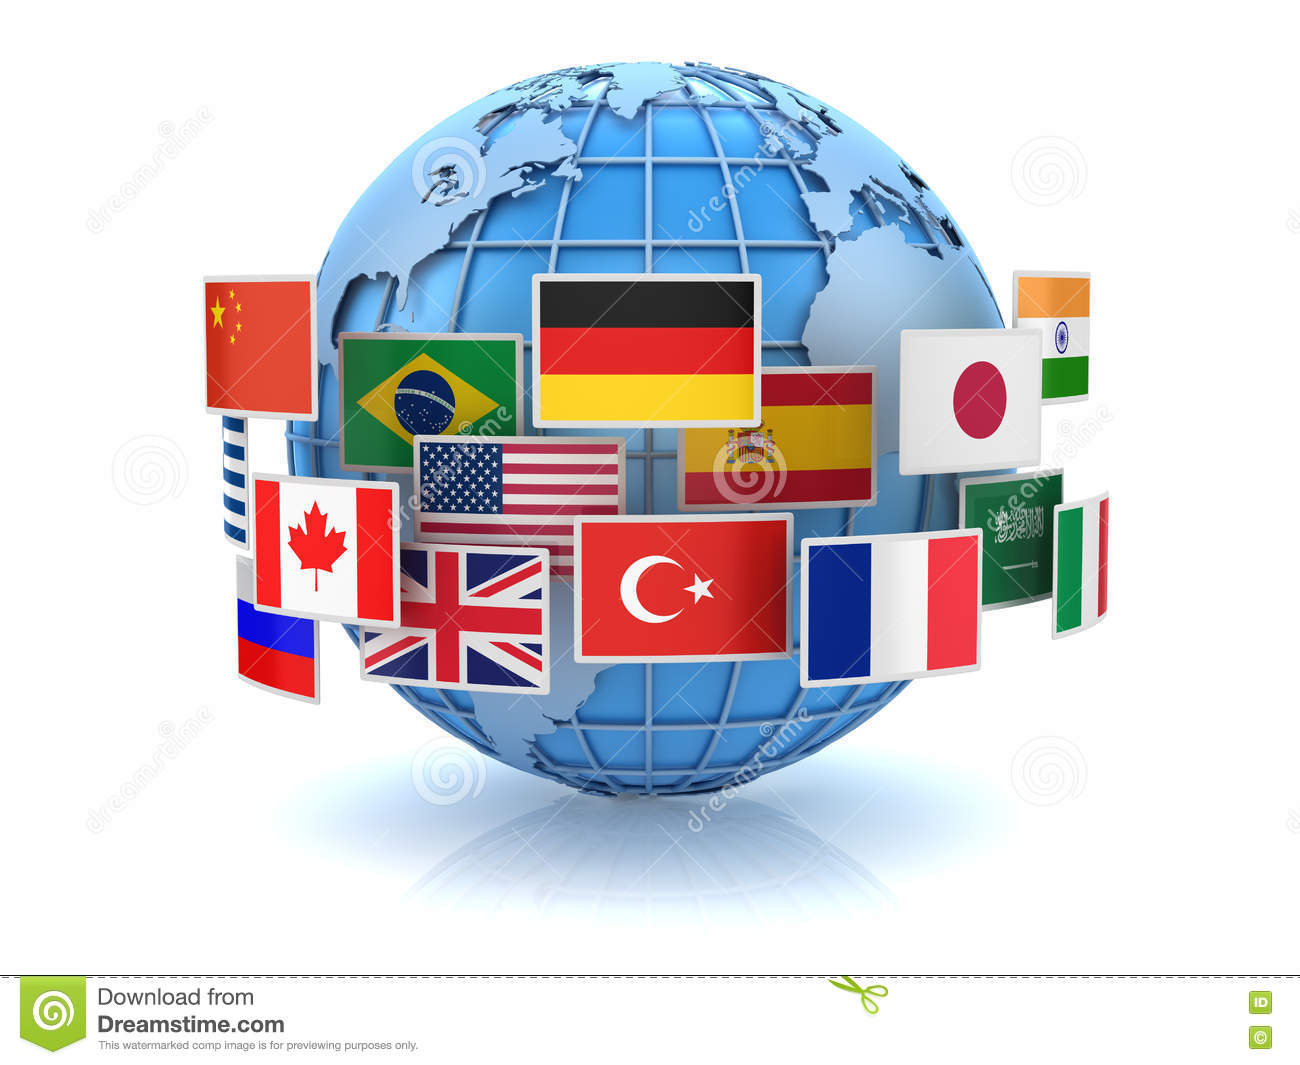 World map and country flags stock illustration illustration of download world map and country flags stock illustration illustration of europe global 74091610 gumiabroncs Choice Image